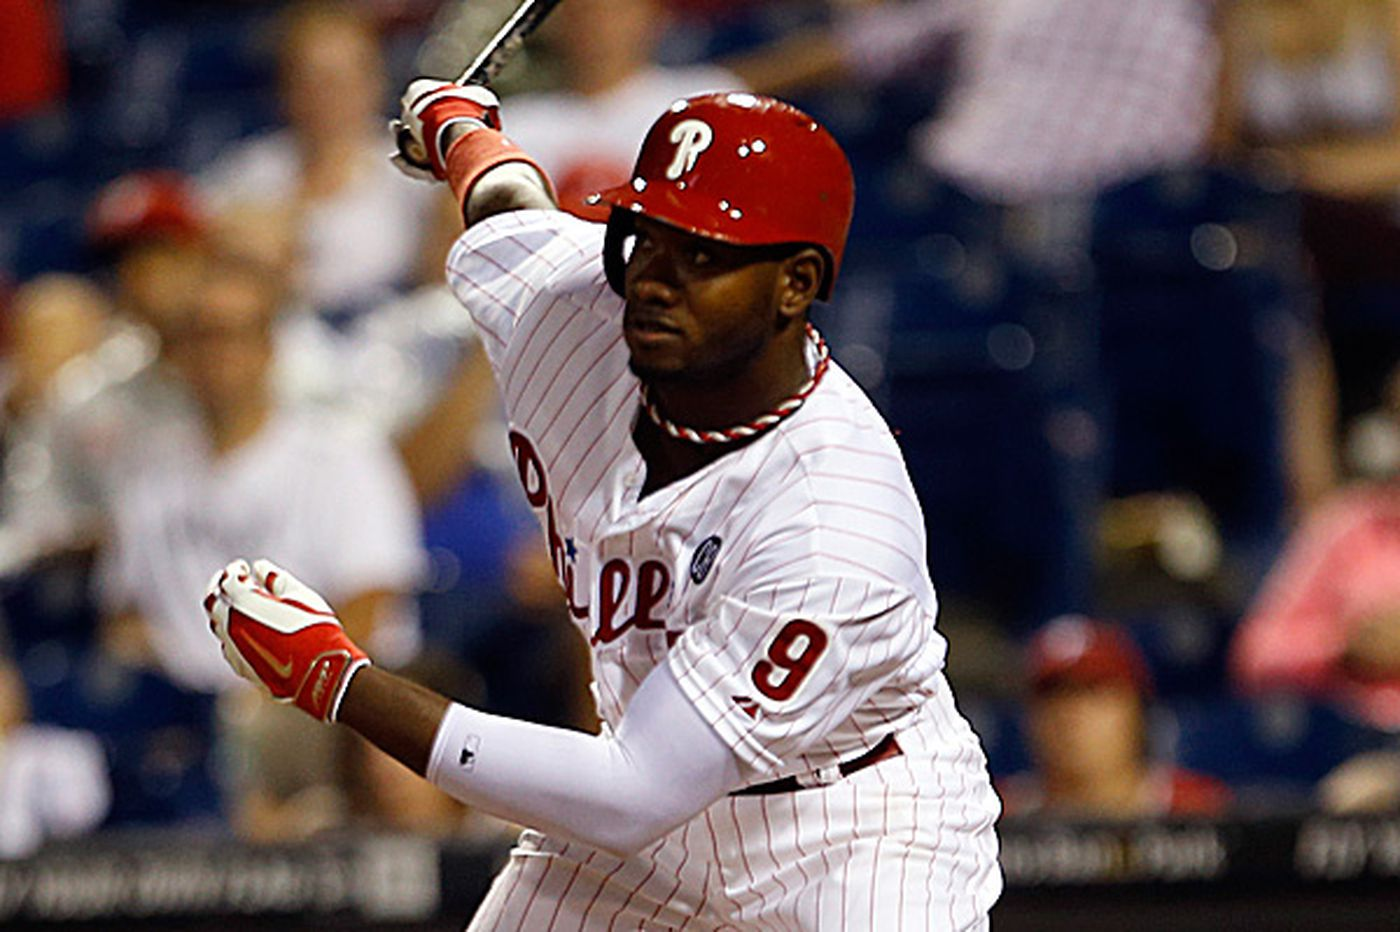 Phillies to tender contracts to Brown, Bastardo and Revere